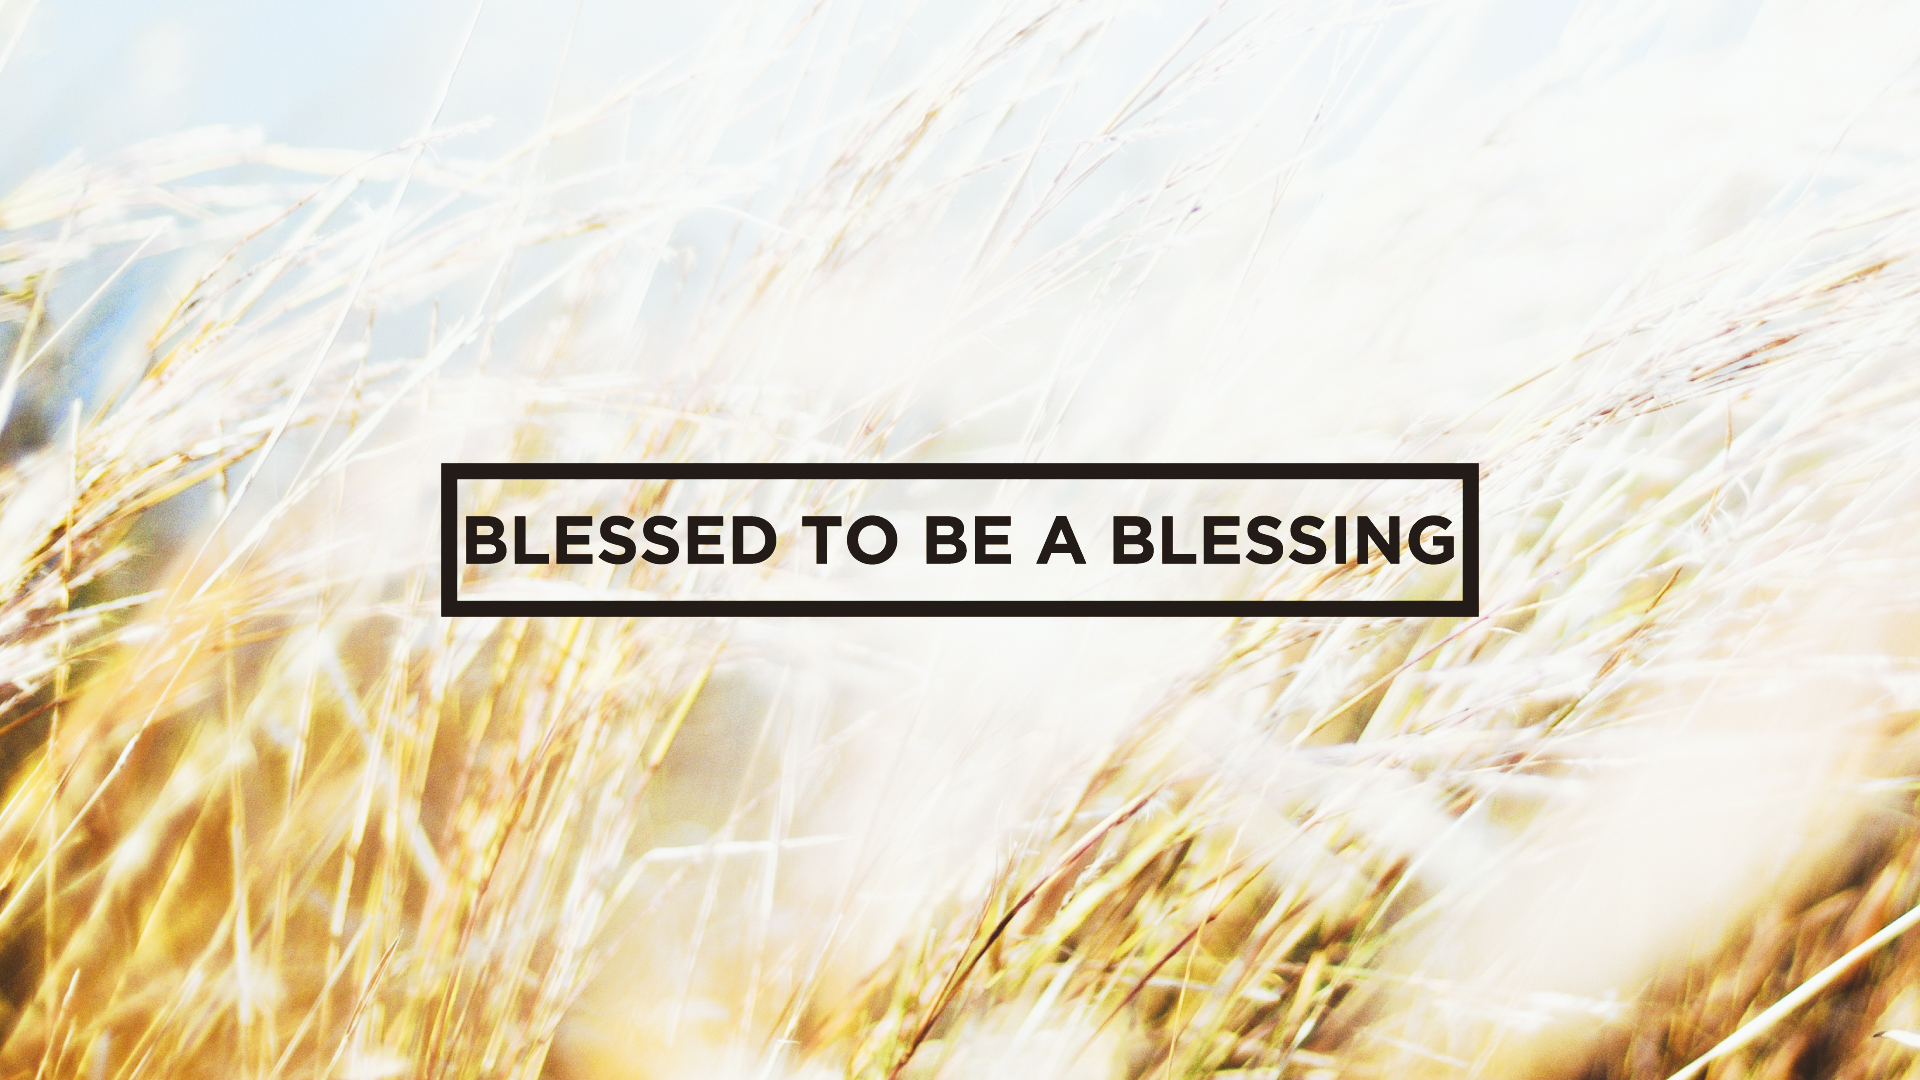 04-BLESSED TO BE A BLESSING (1).JPG